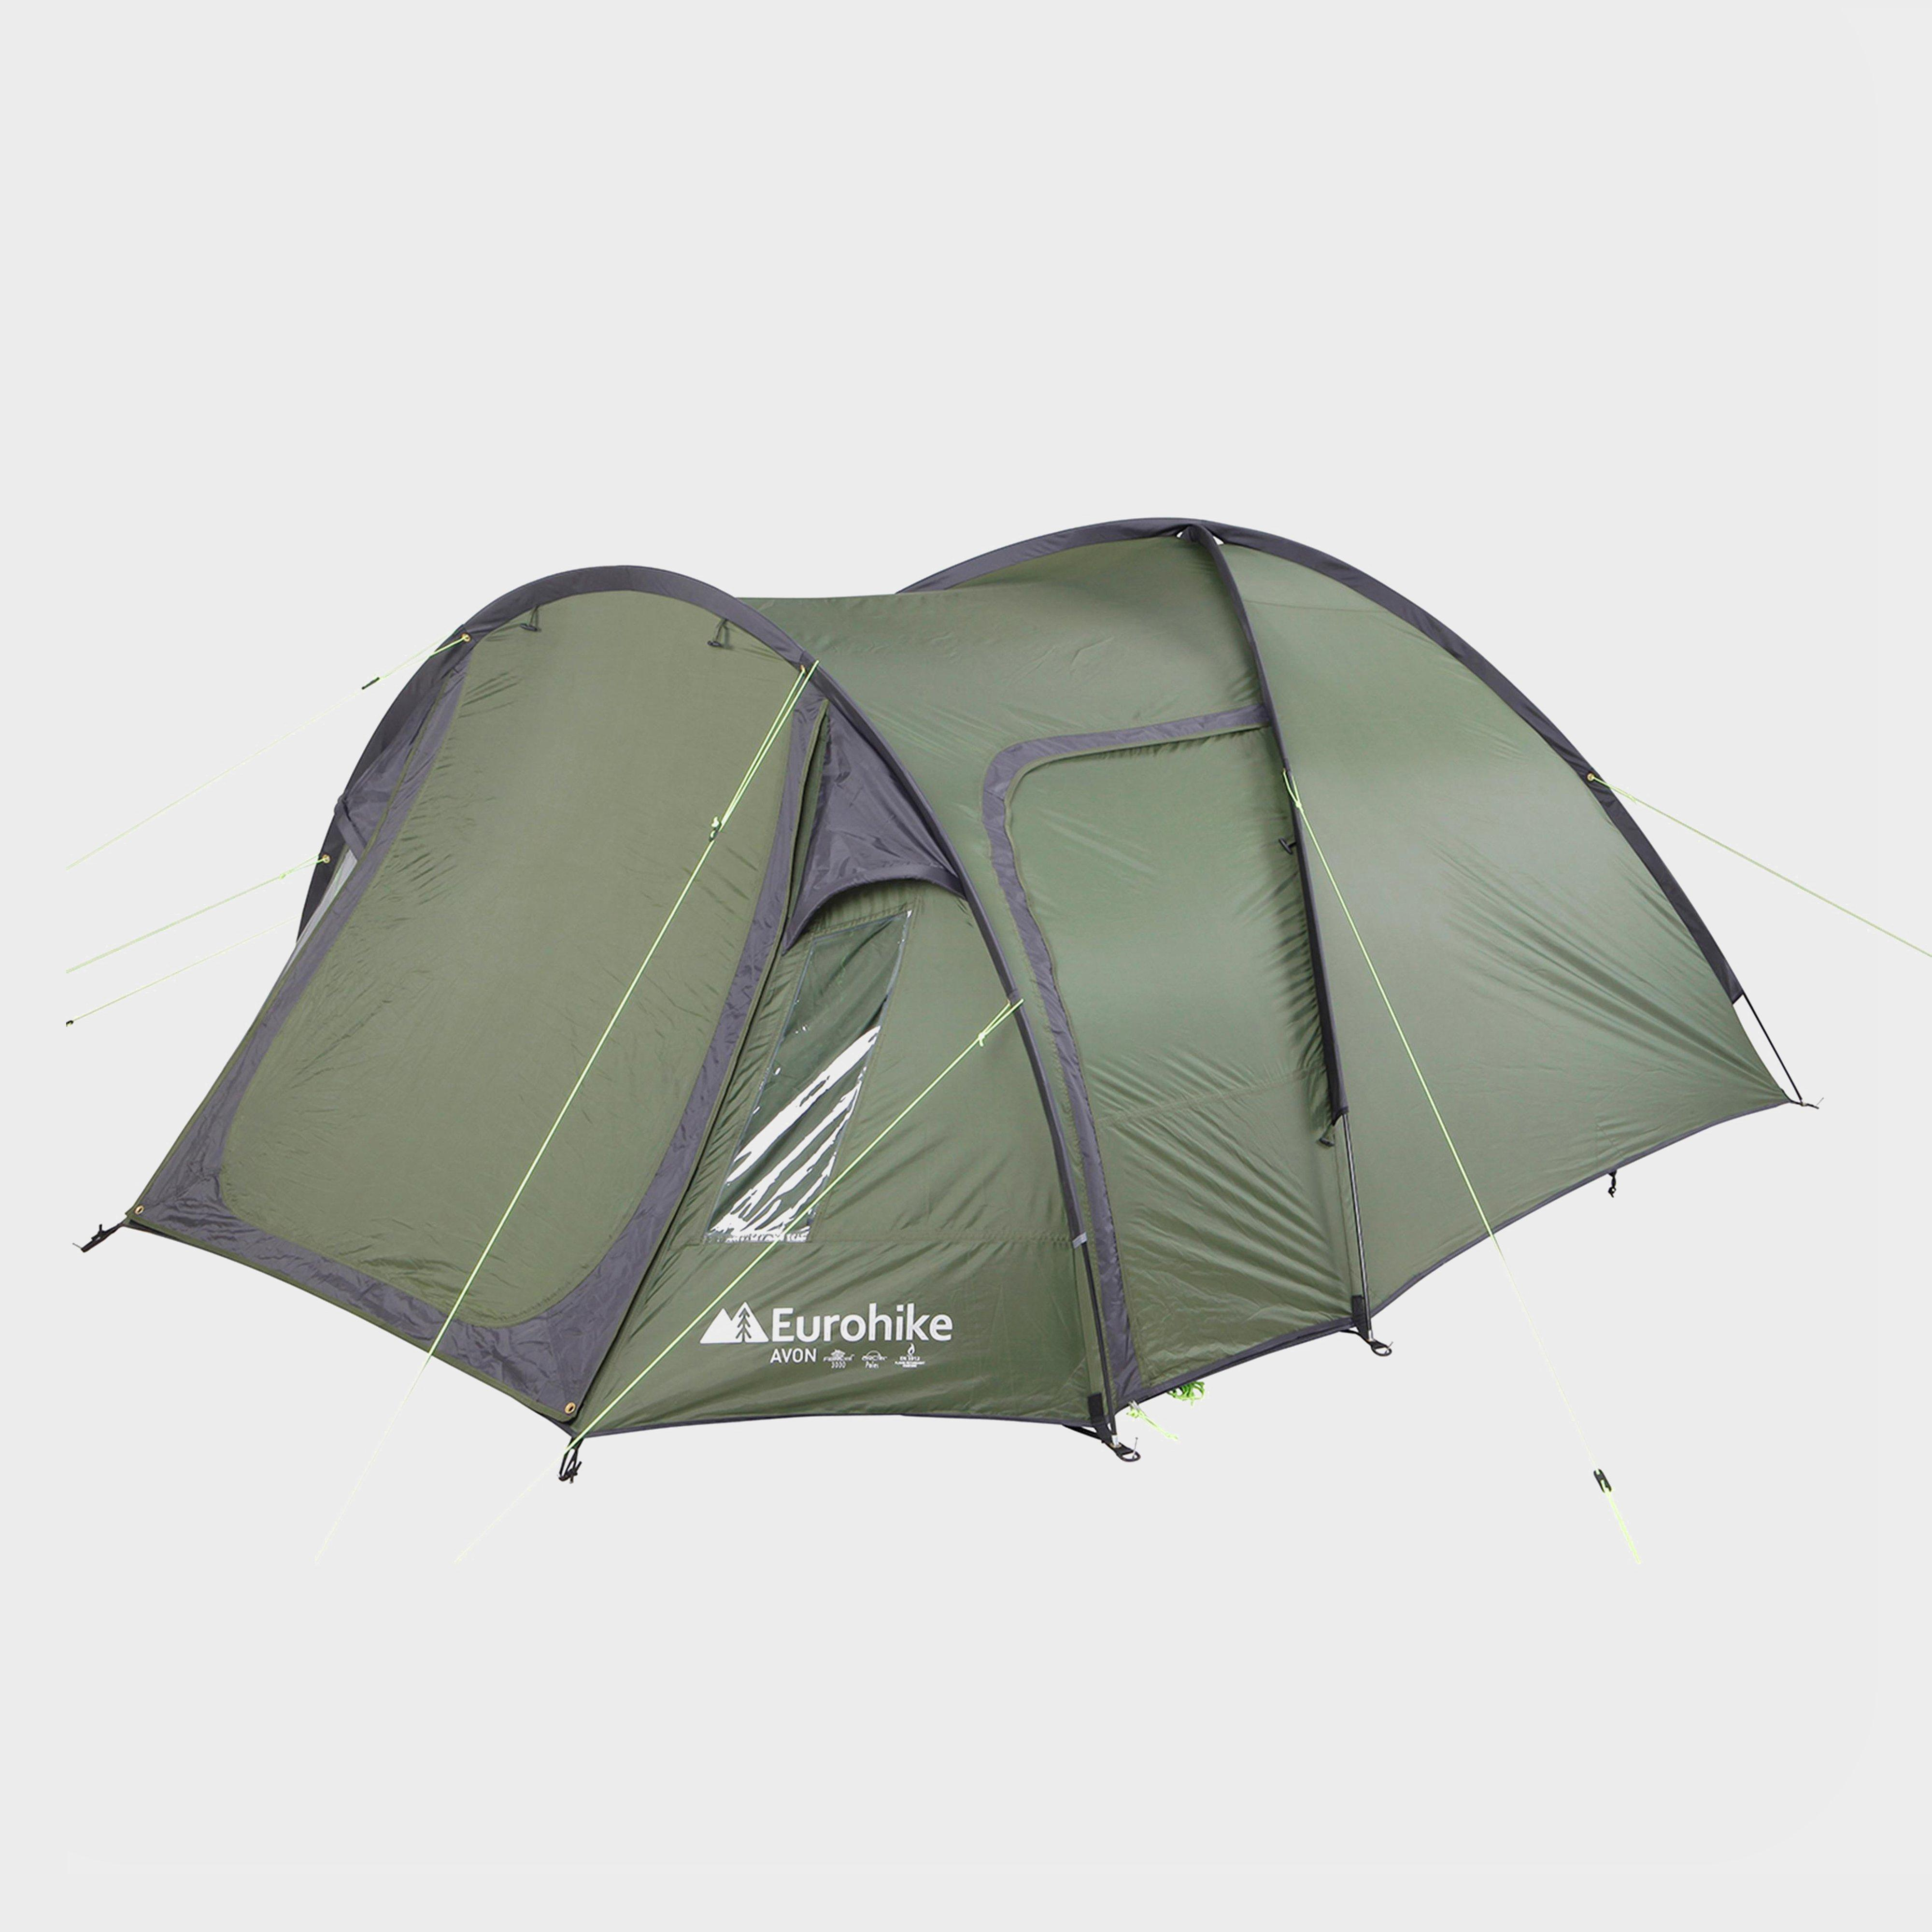 Green EUROHIKE Avon Deluxe 3 Person Tent ... & 3 Man Tent | 3 Person Tents | Millets